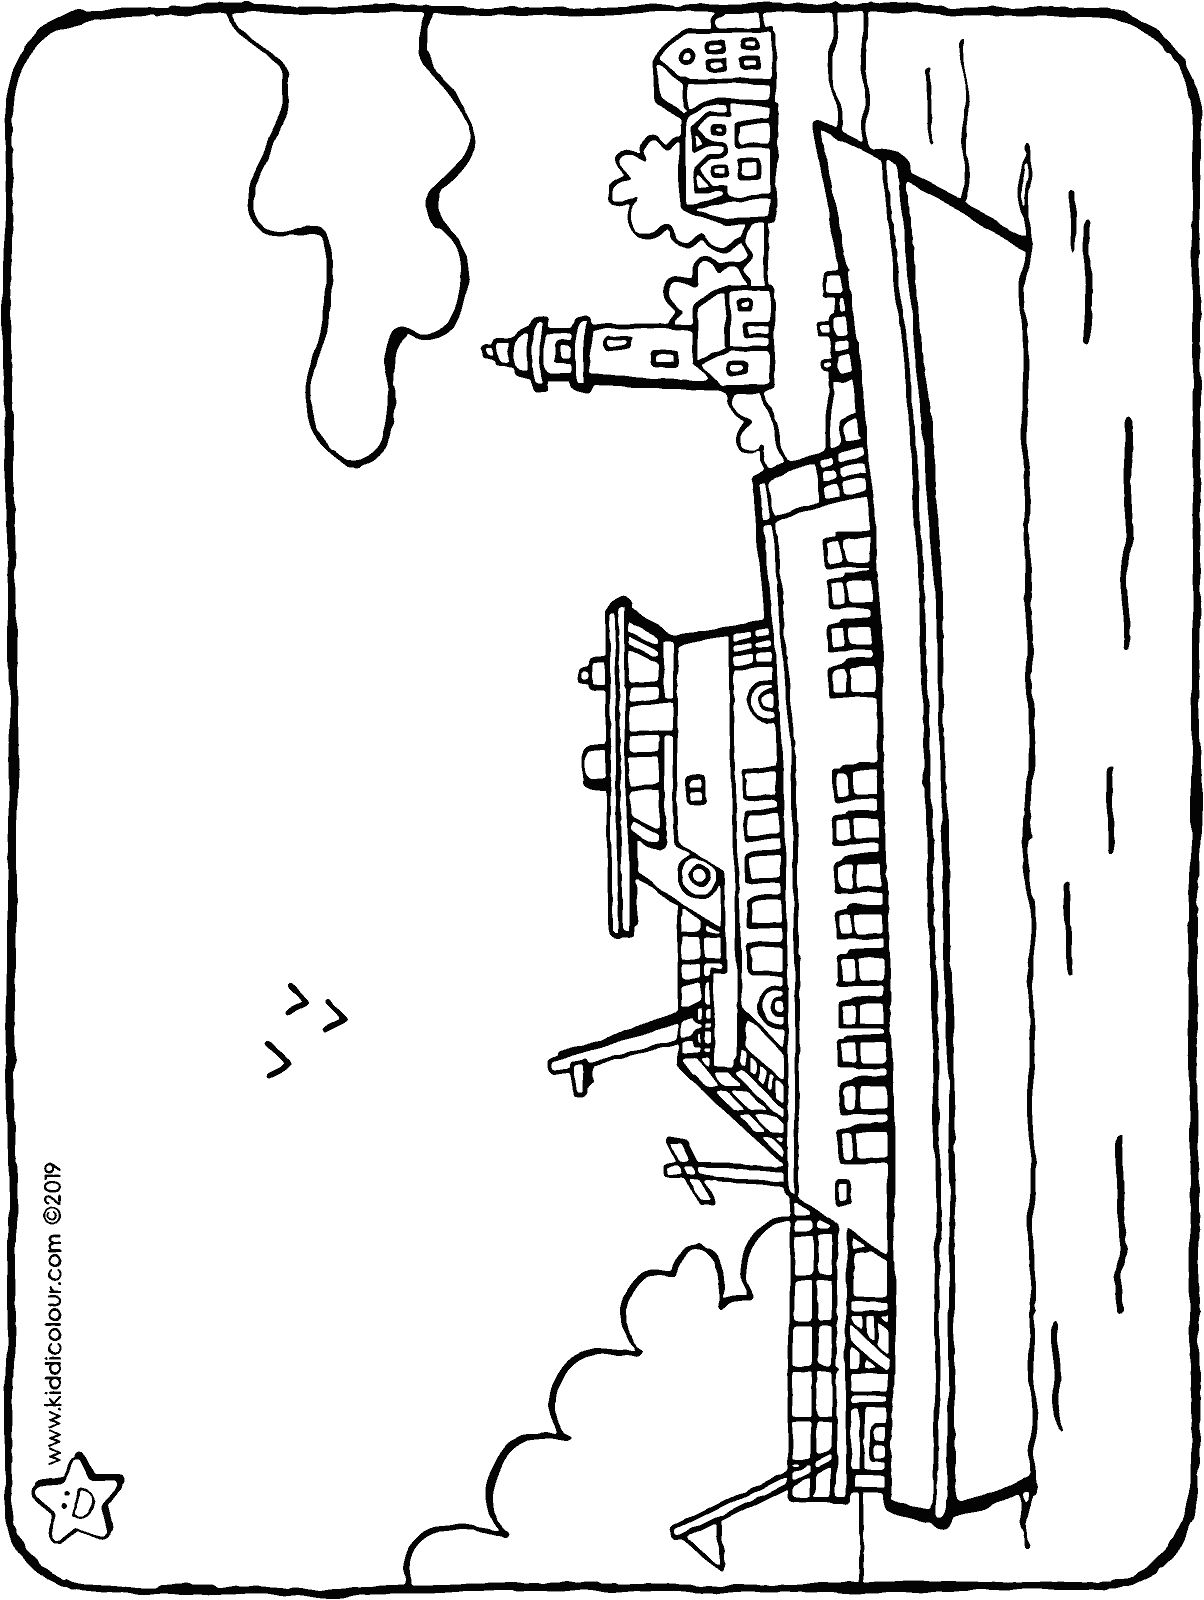 a small passenger boat colouring page drawing picture 01H